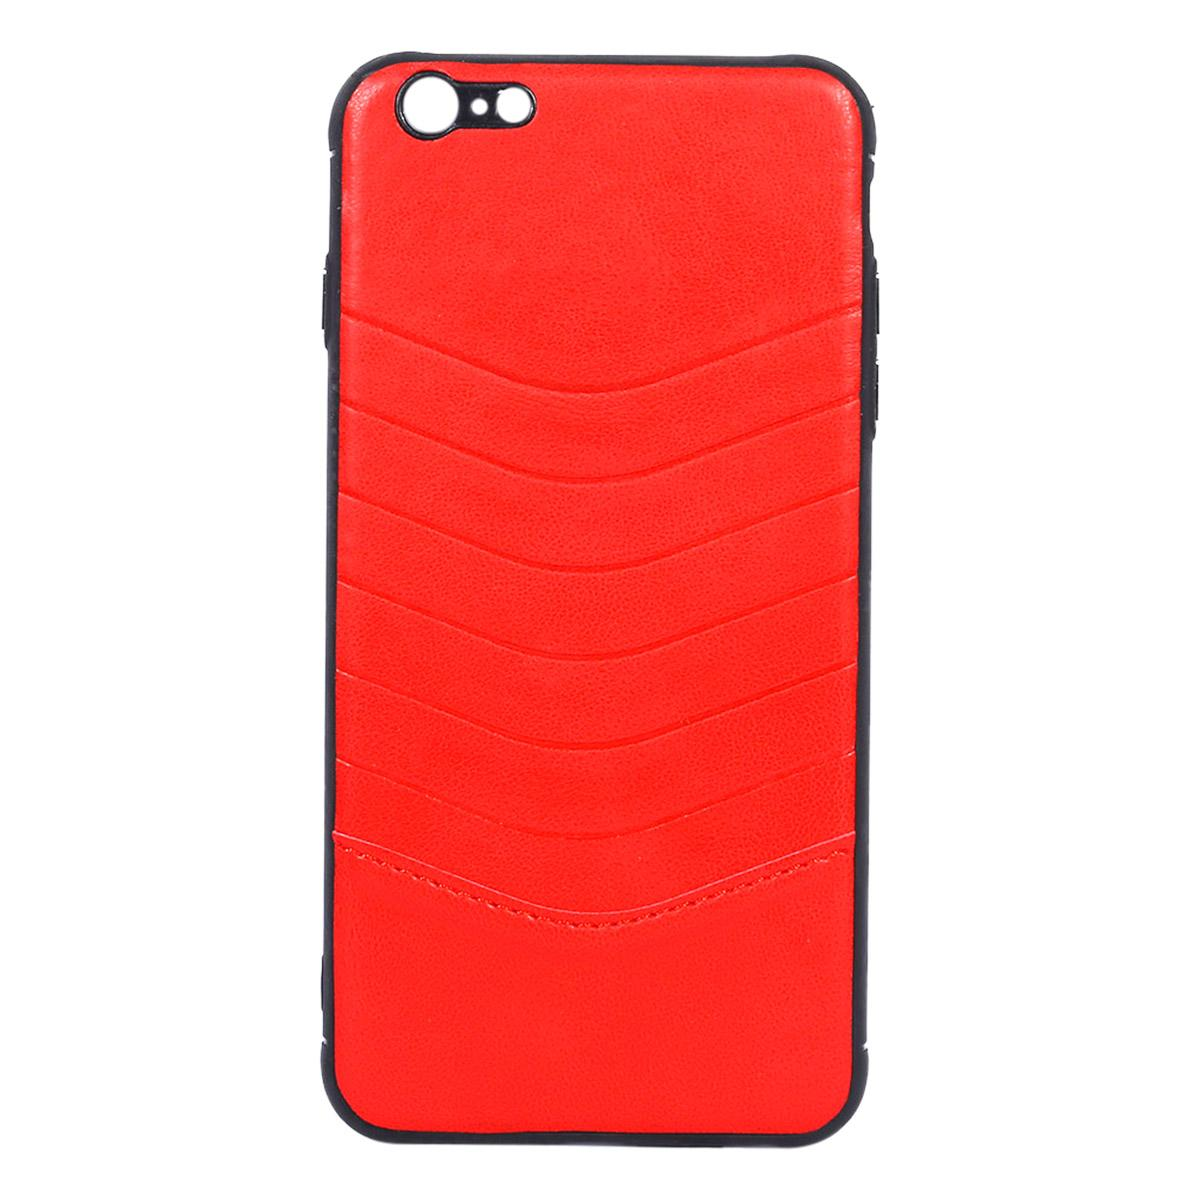 Leather Back Cover for iPhone 6 Plus - Red